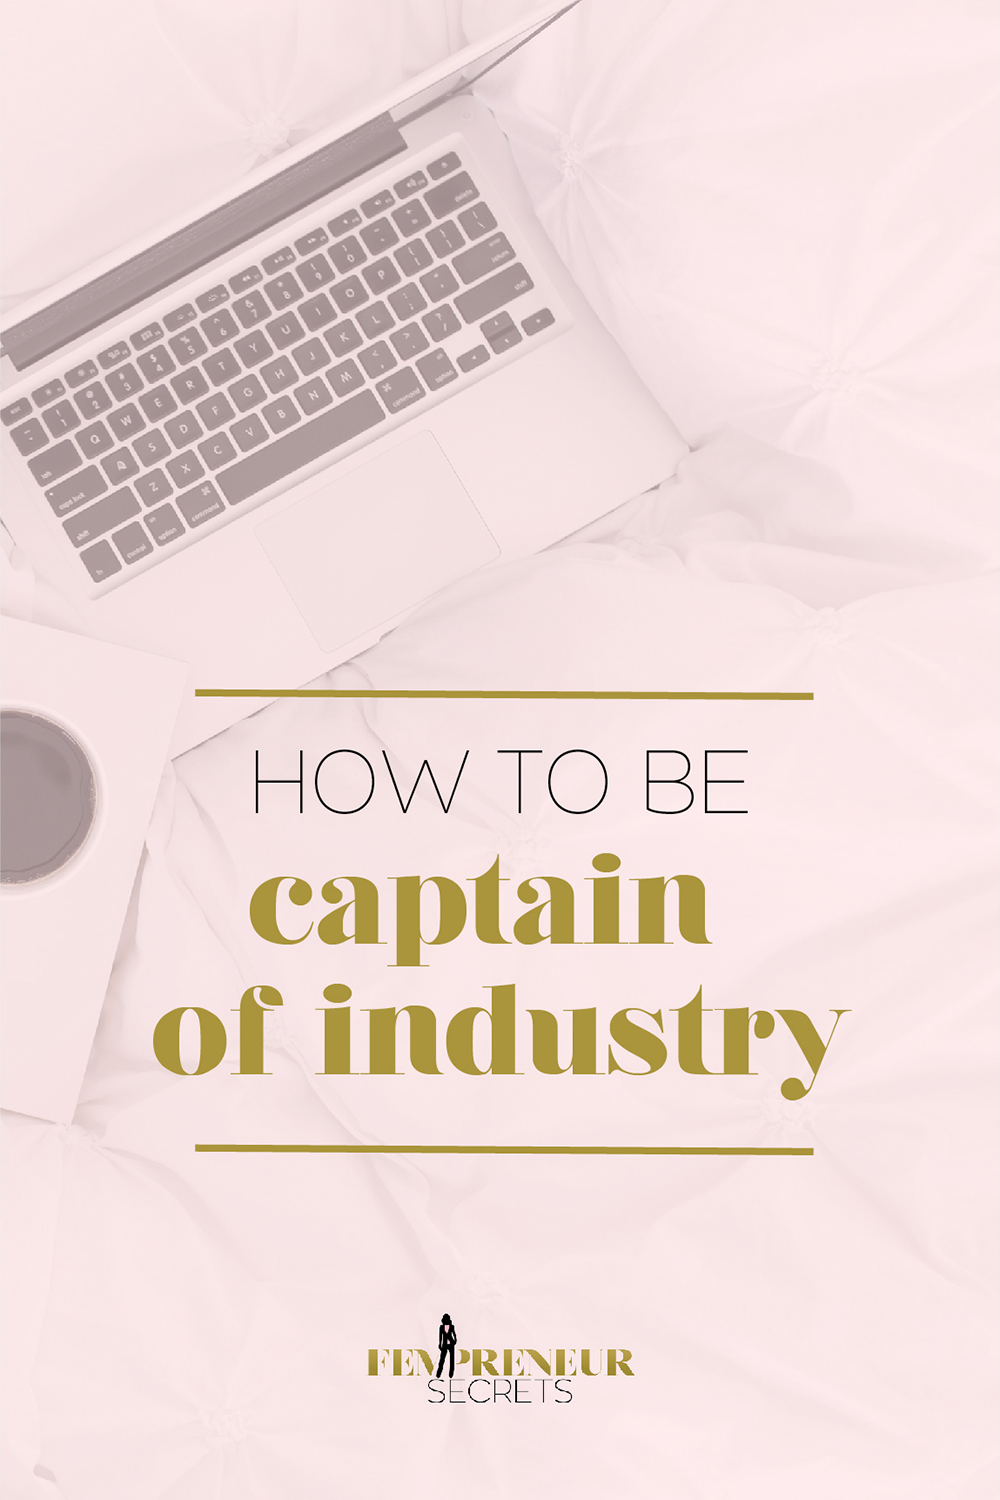 020 How to Be Captain of Industry_Pinterest 2.jpg